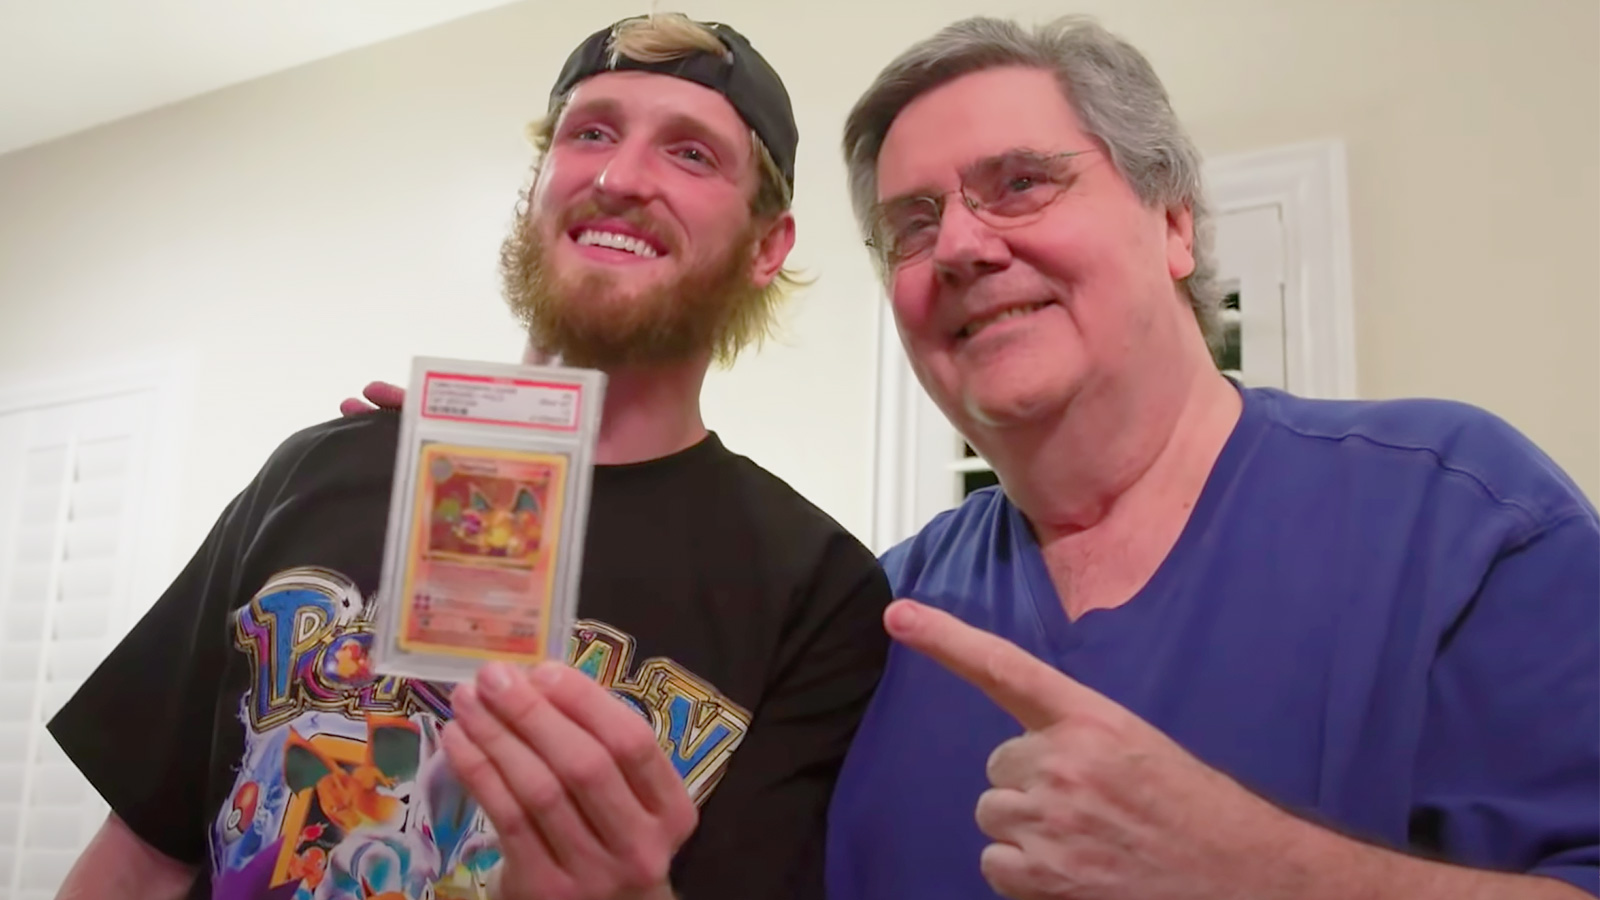 logan paul with gary from pawn stars